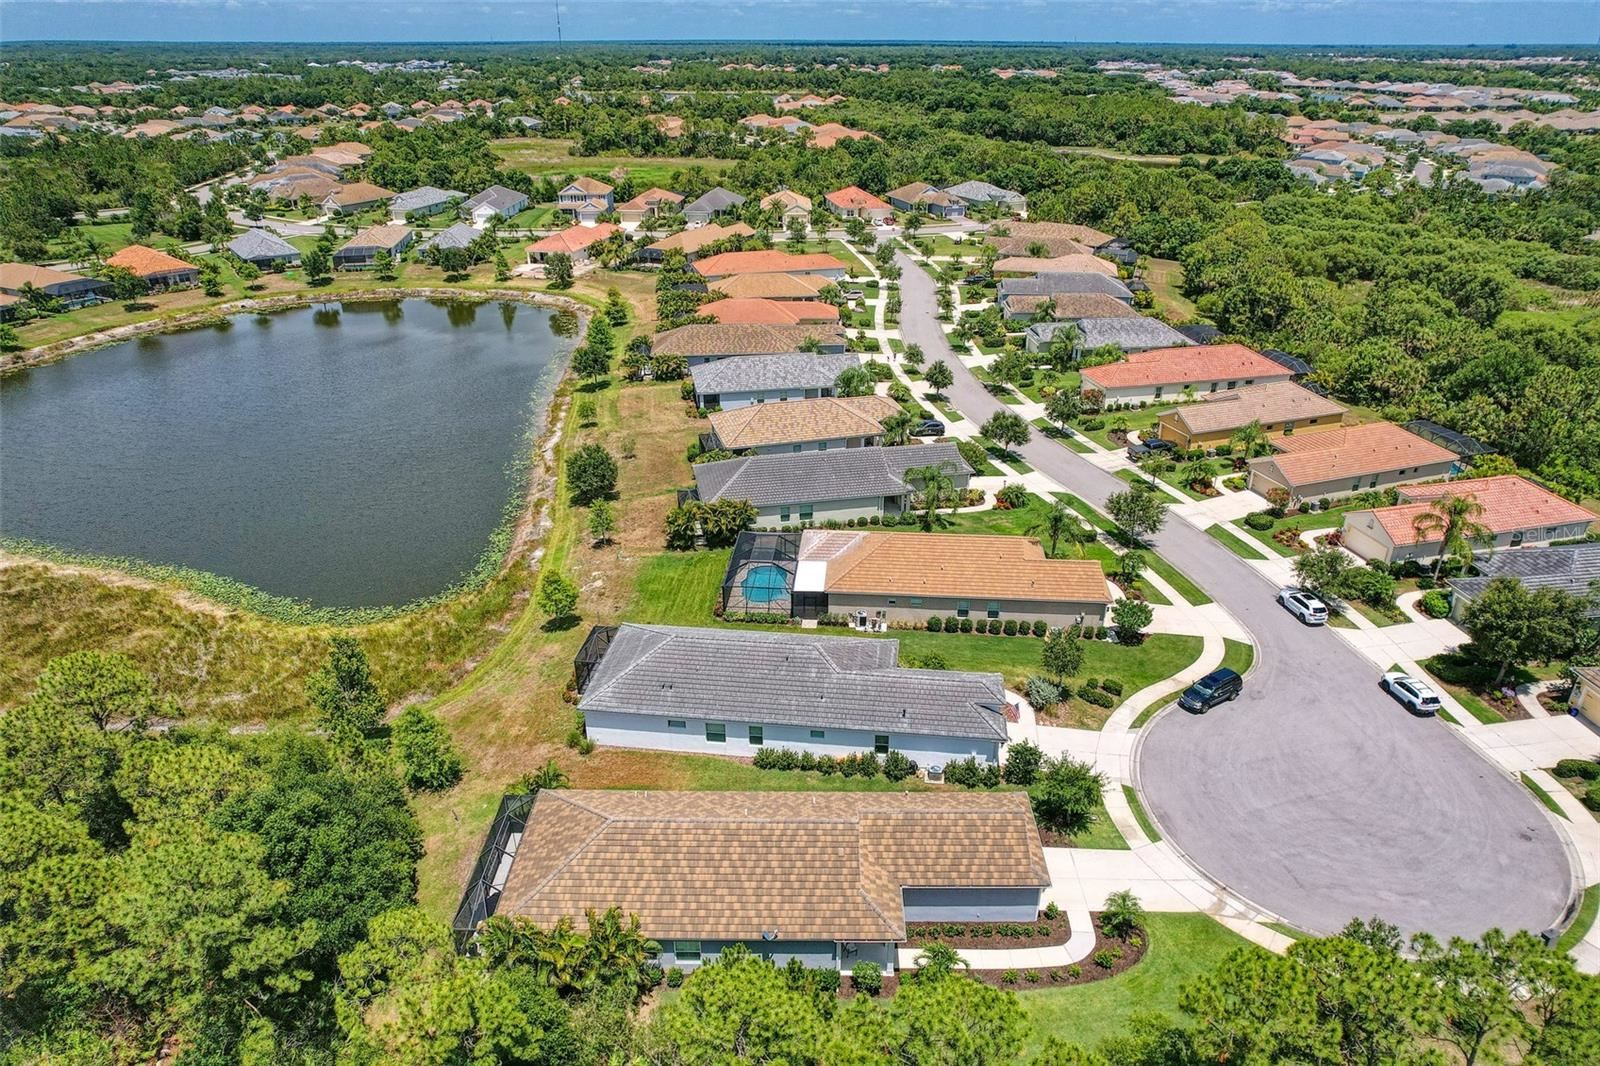 Photo of 11410 FORT LAUDERDALE PLACE, VENICE, FL 34293 (MLS # N6115828)